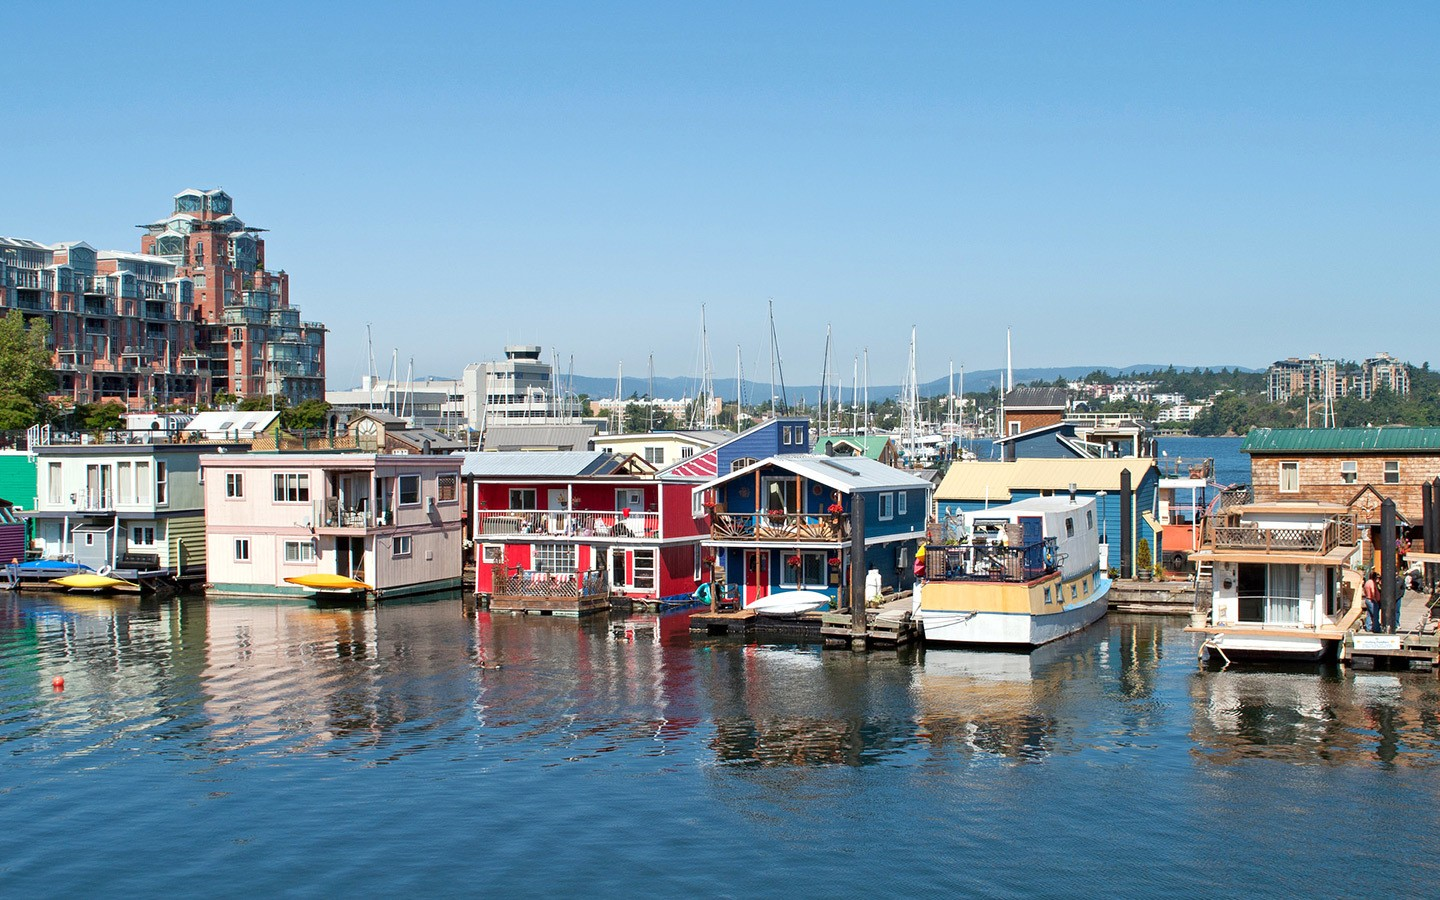 Fisherman's Wharf in Victoria, British Columbia